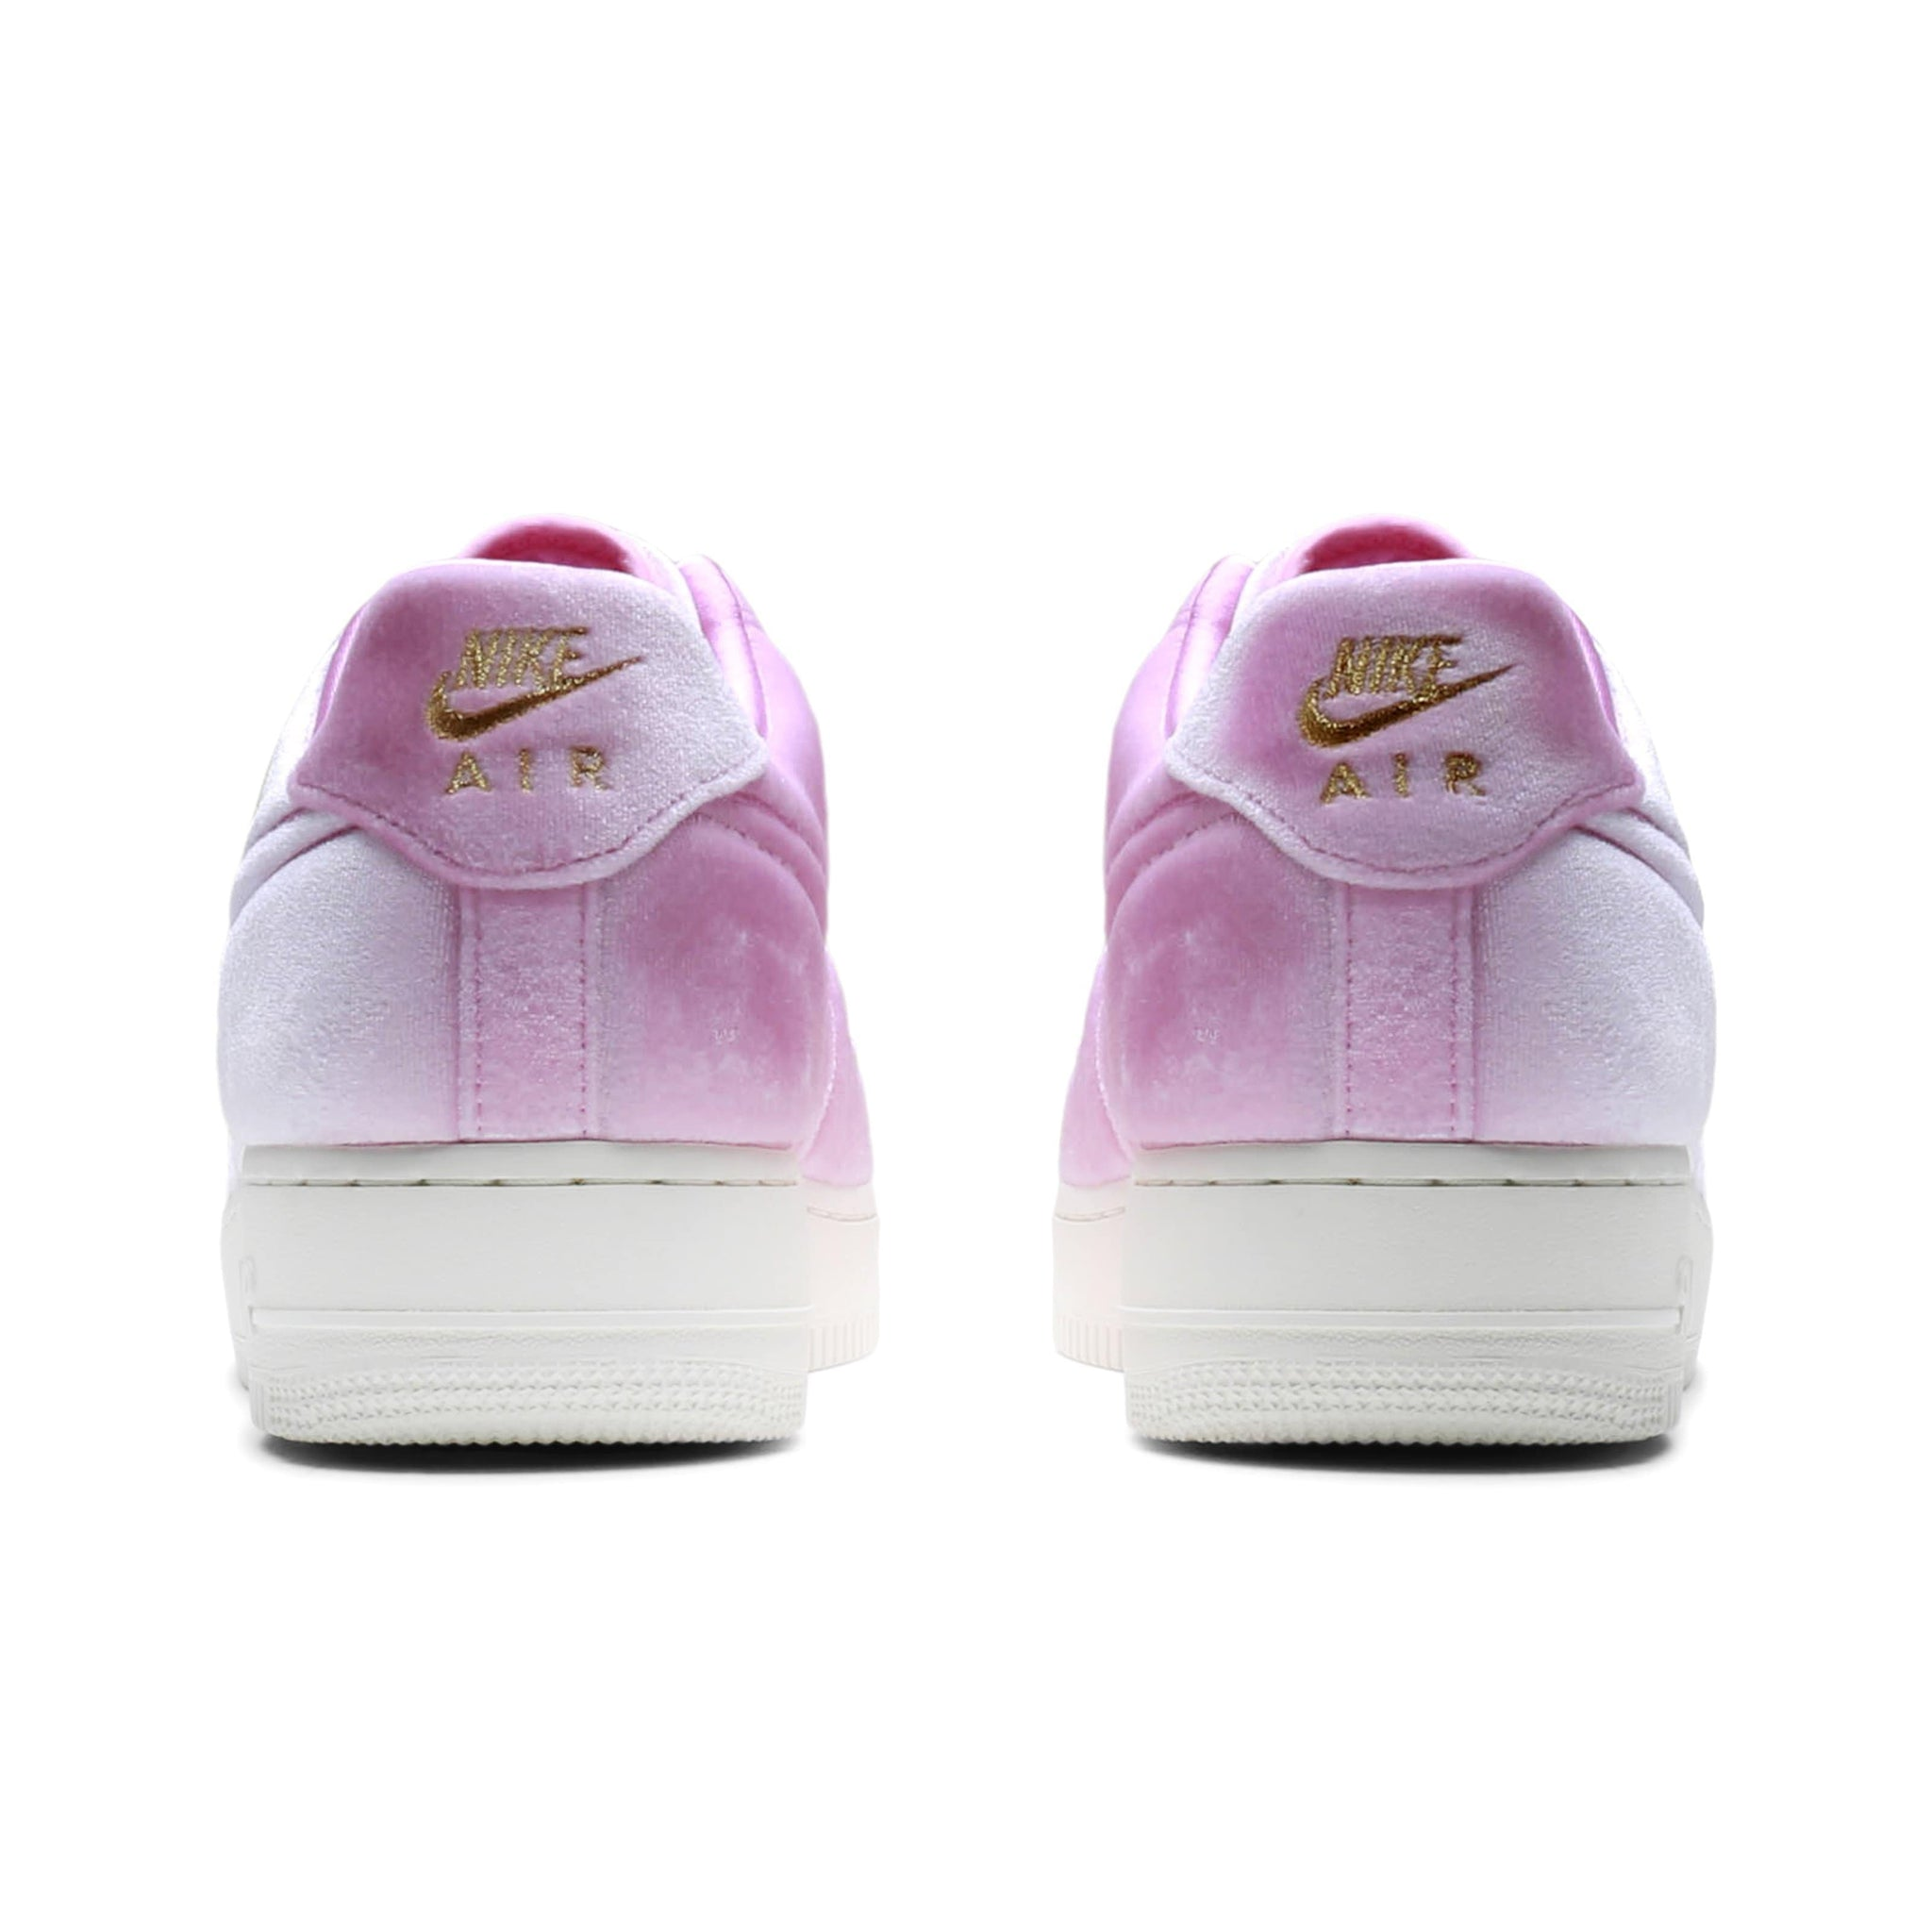 new products f8e99 1b20f Nike AIR FORCE 1  07 PREMIUM 3 (PINK RISE SAIL METALLIC GOLD